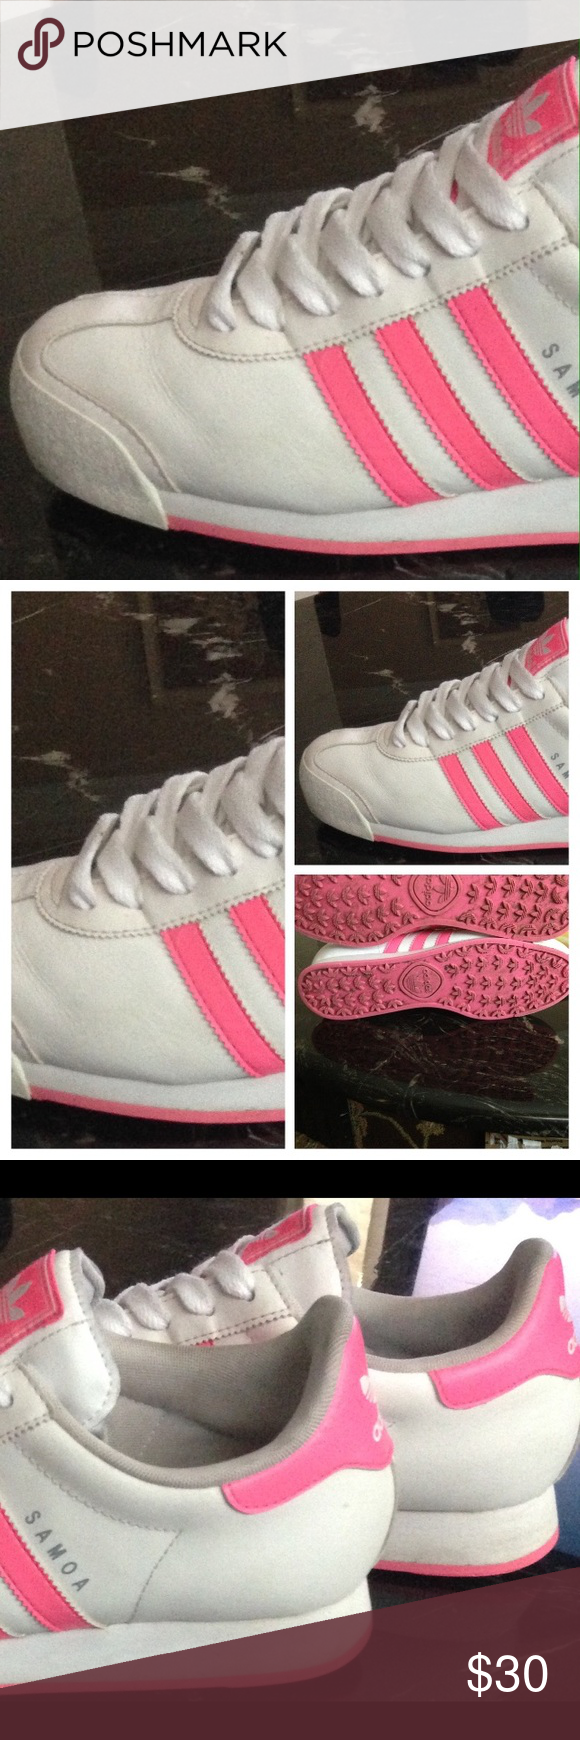 1fa938cd0b6765 Adidas originals Pre loved still in good condition! No rips! No stains or  tears! Very comfortable! Women s Adidas Samoa US size 11 and Men s size 9  Adidas ...